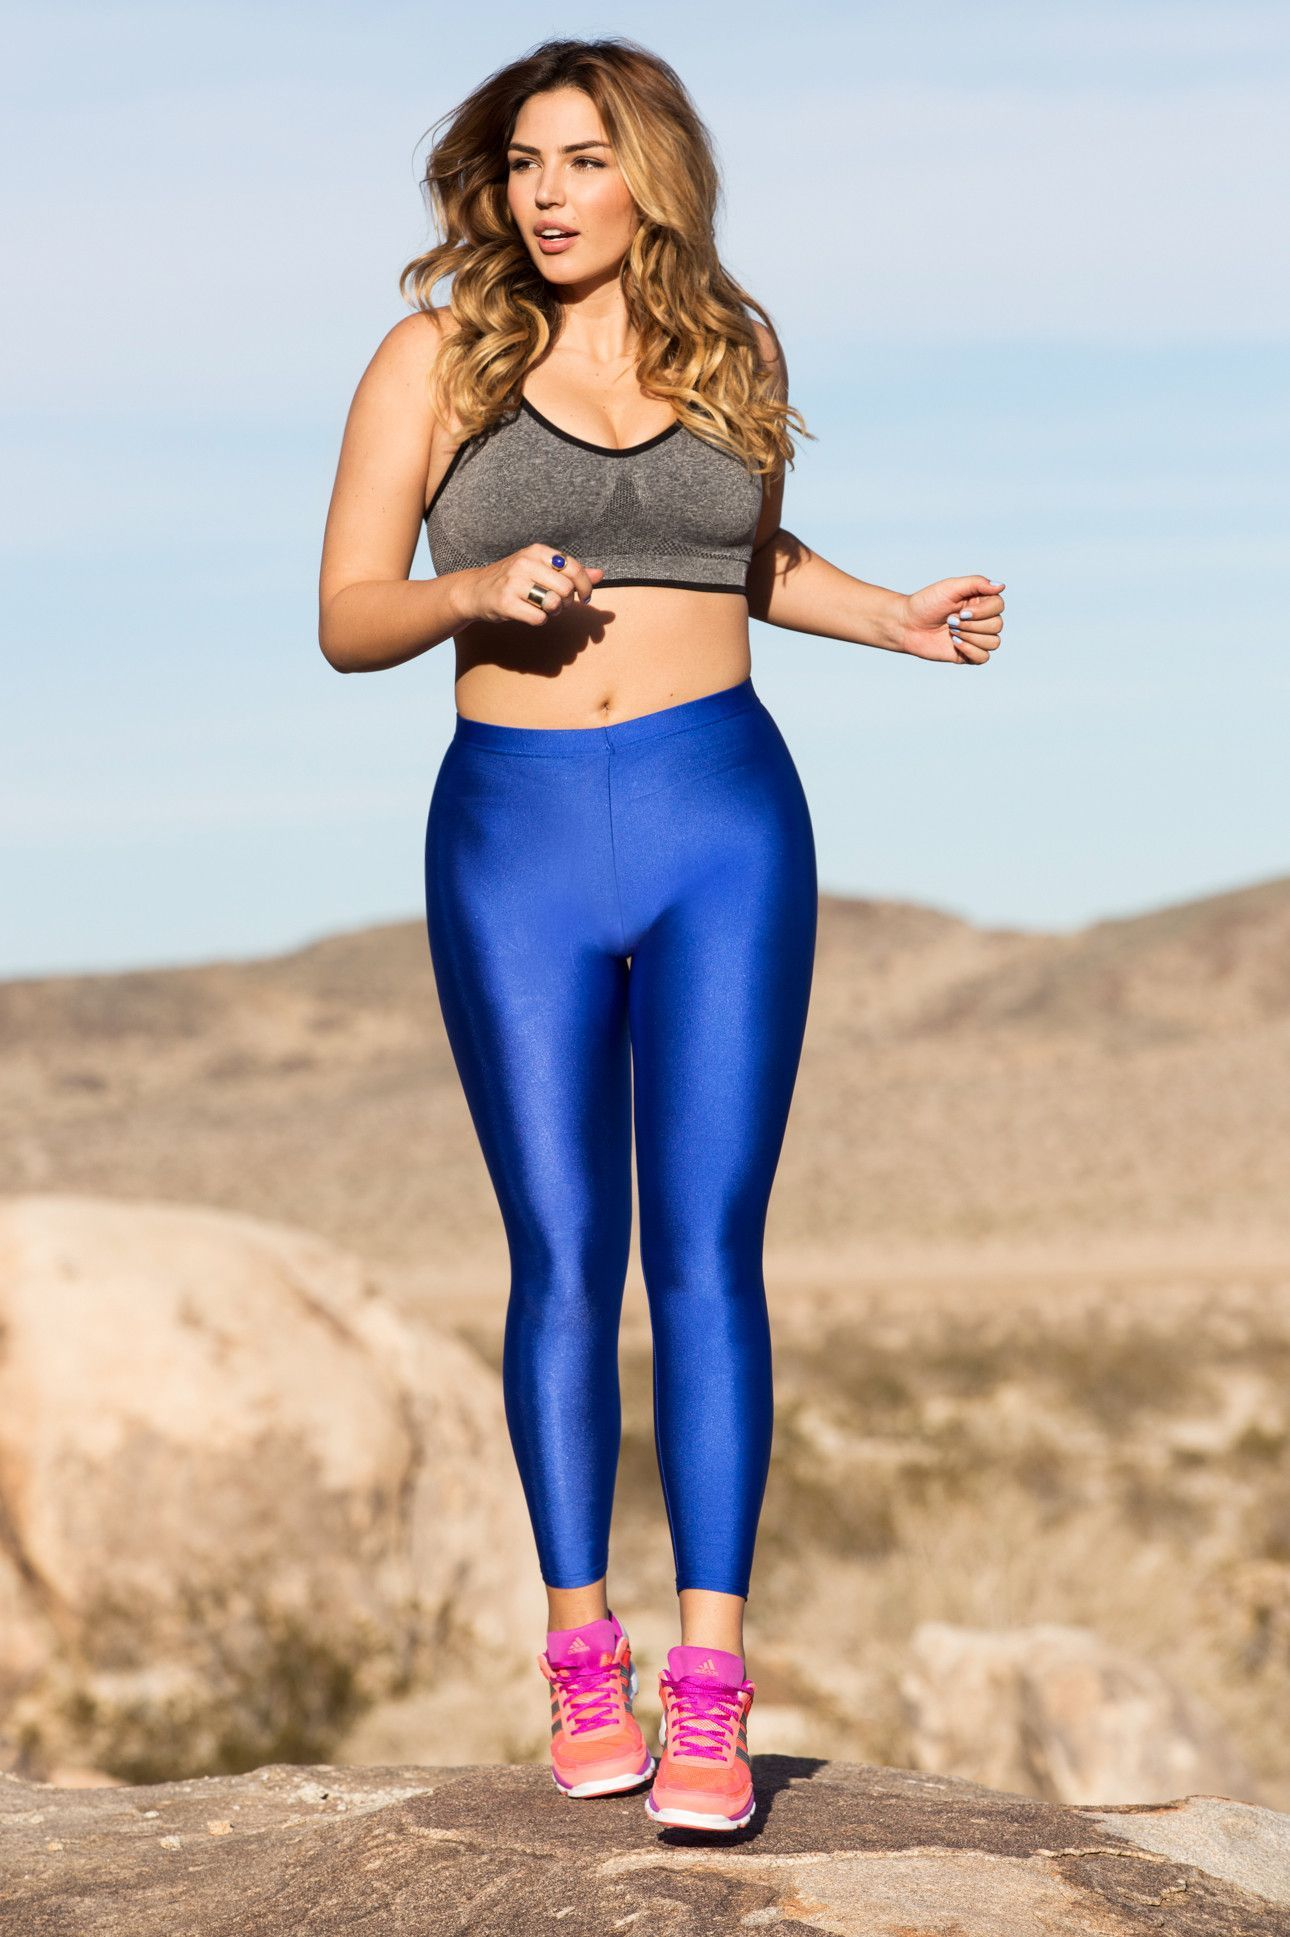 Shiny Blue Leggings | ウェア | Pinterest | Prodotti di bellezza ...